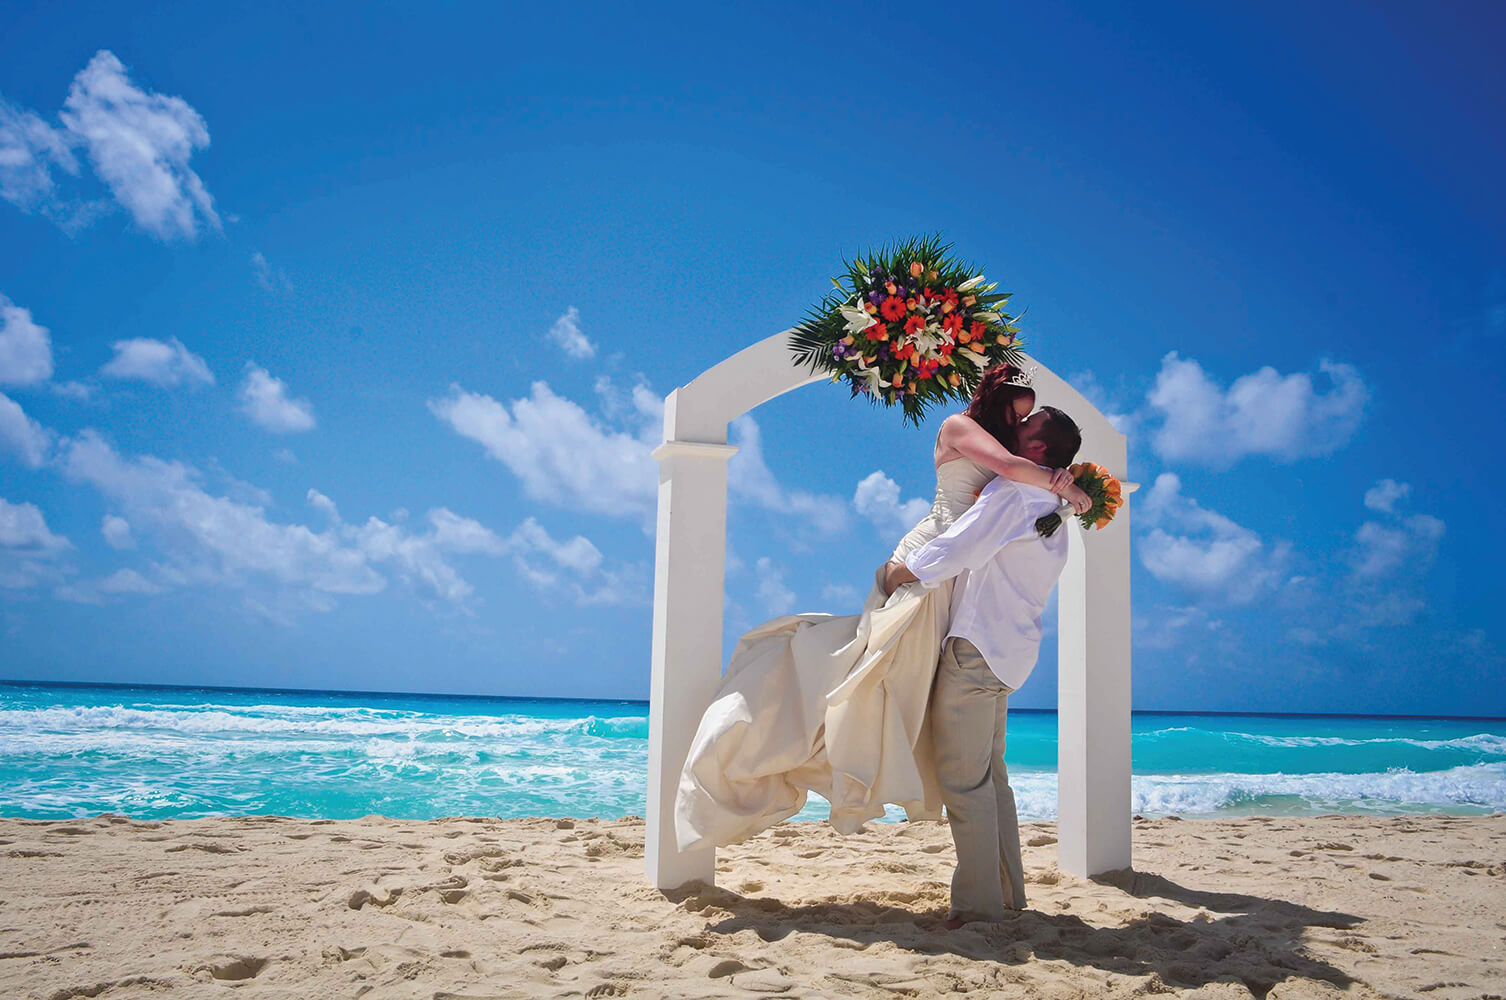 Destination Wedding Venue – Oasis Hotels & Resorts